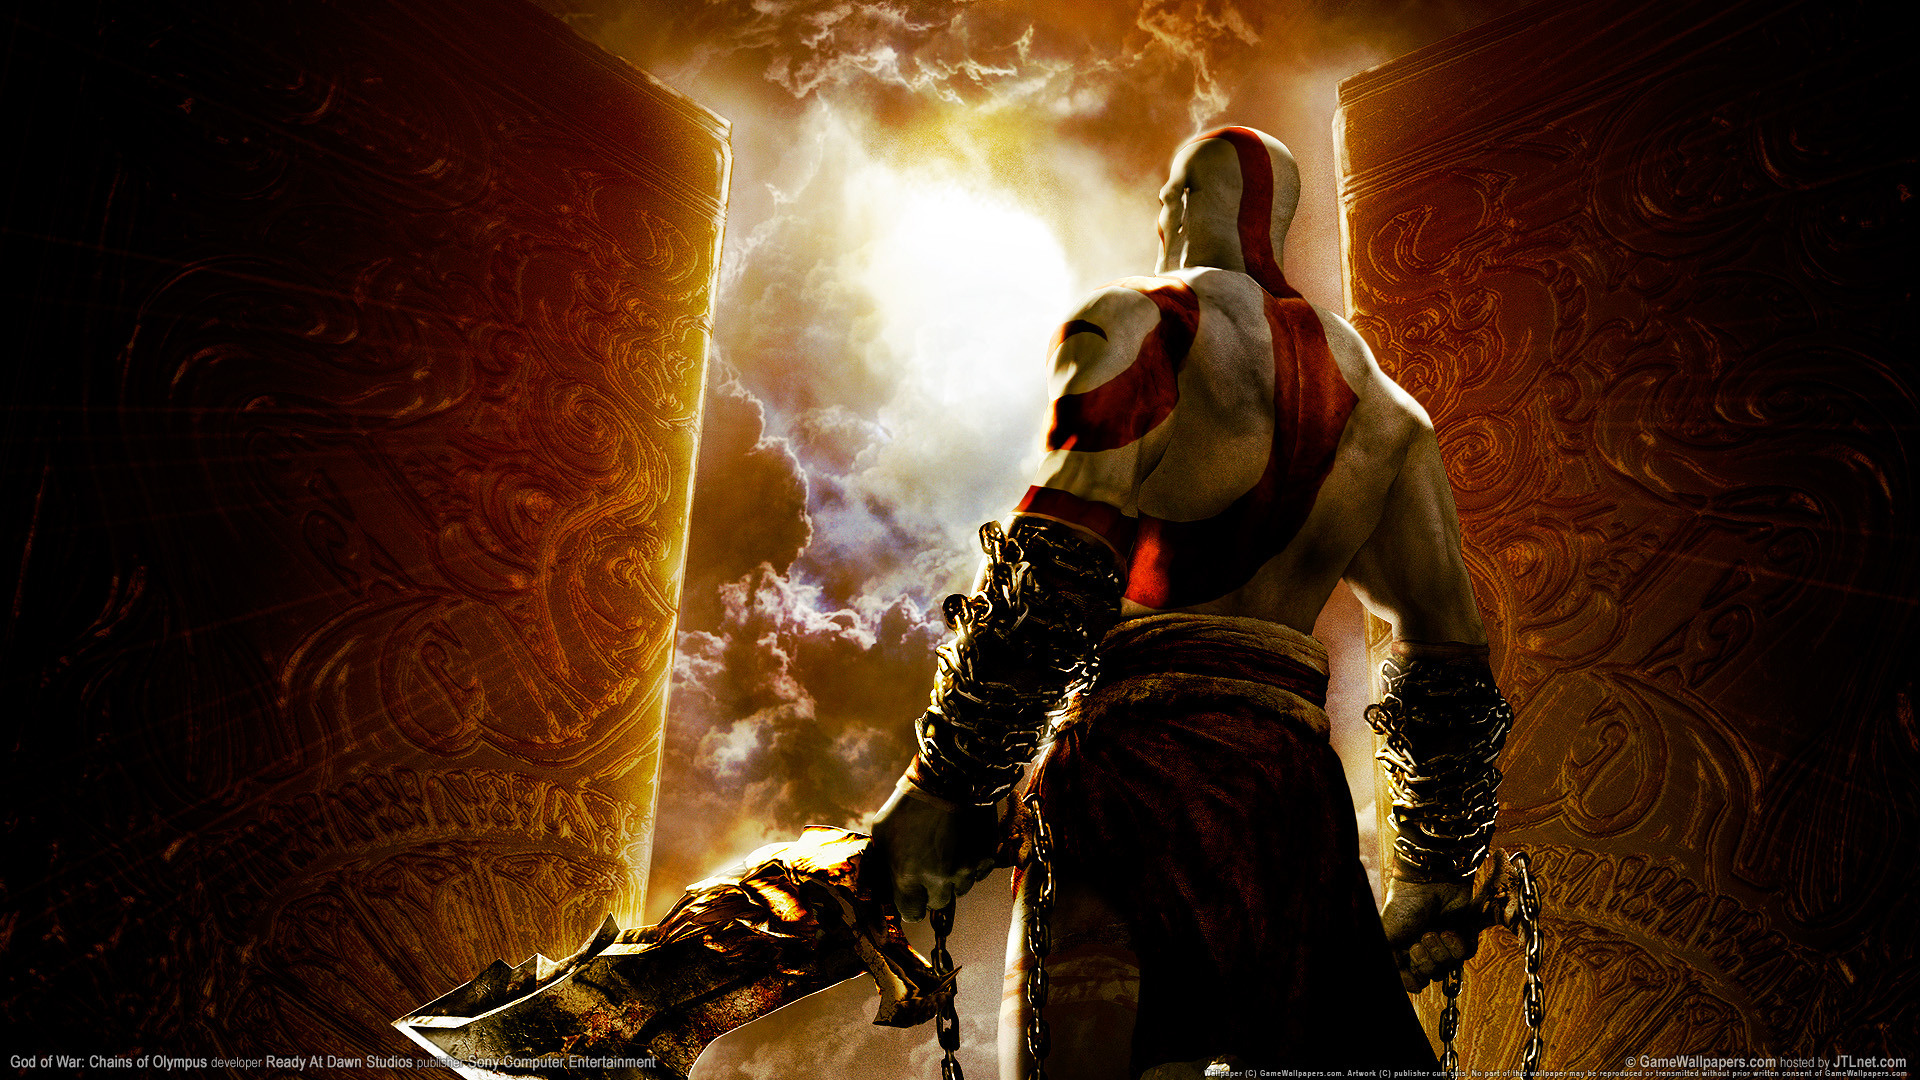 God Of War Chains Of Olympus 4224958 1920x1080 All For